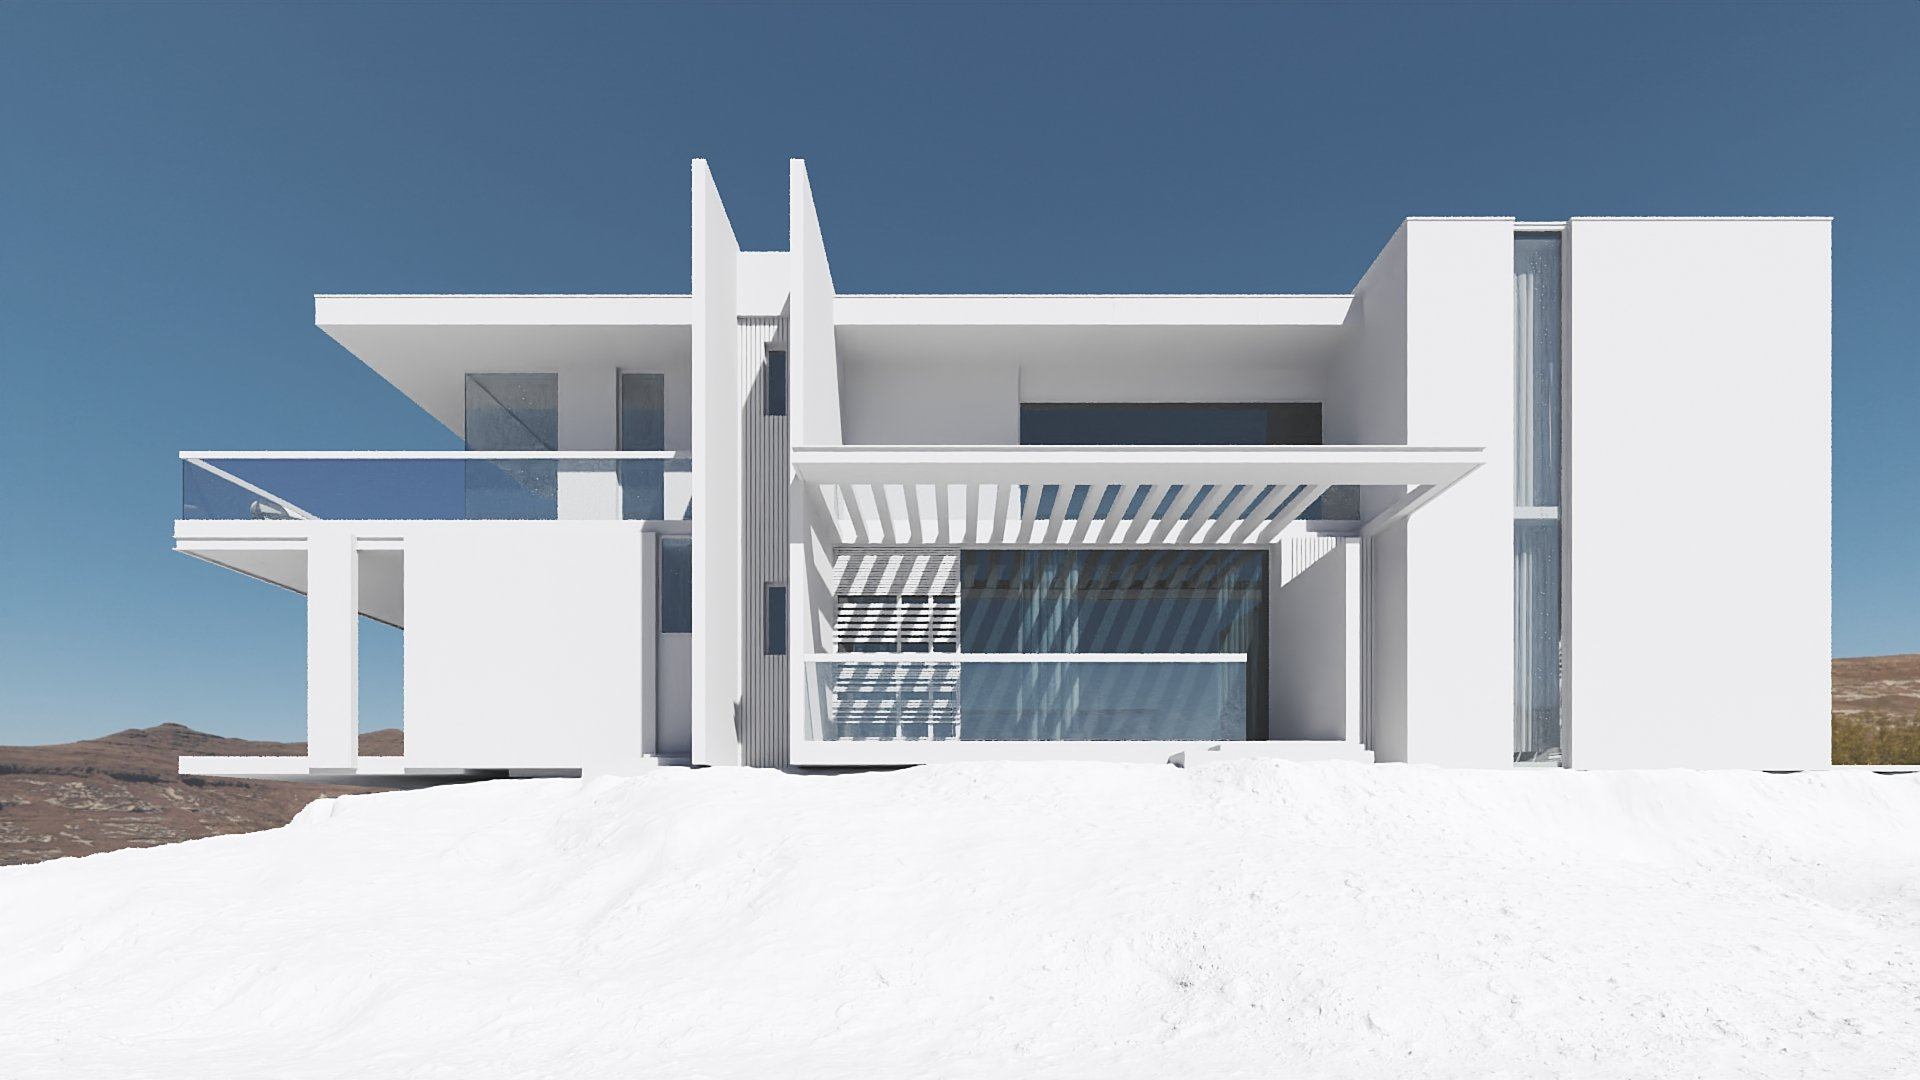 CG Model of the Realistic Architectural Rendering Scene